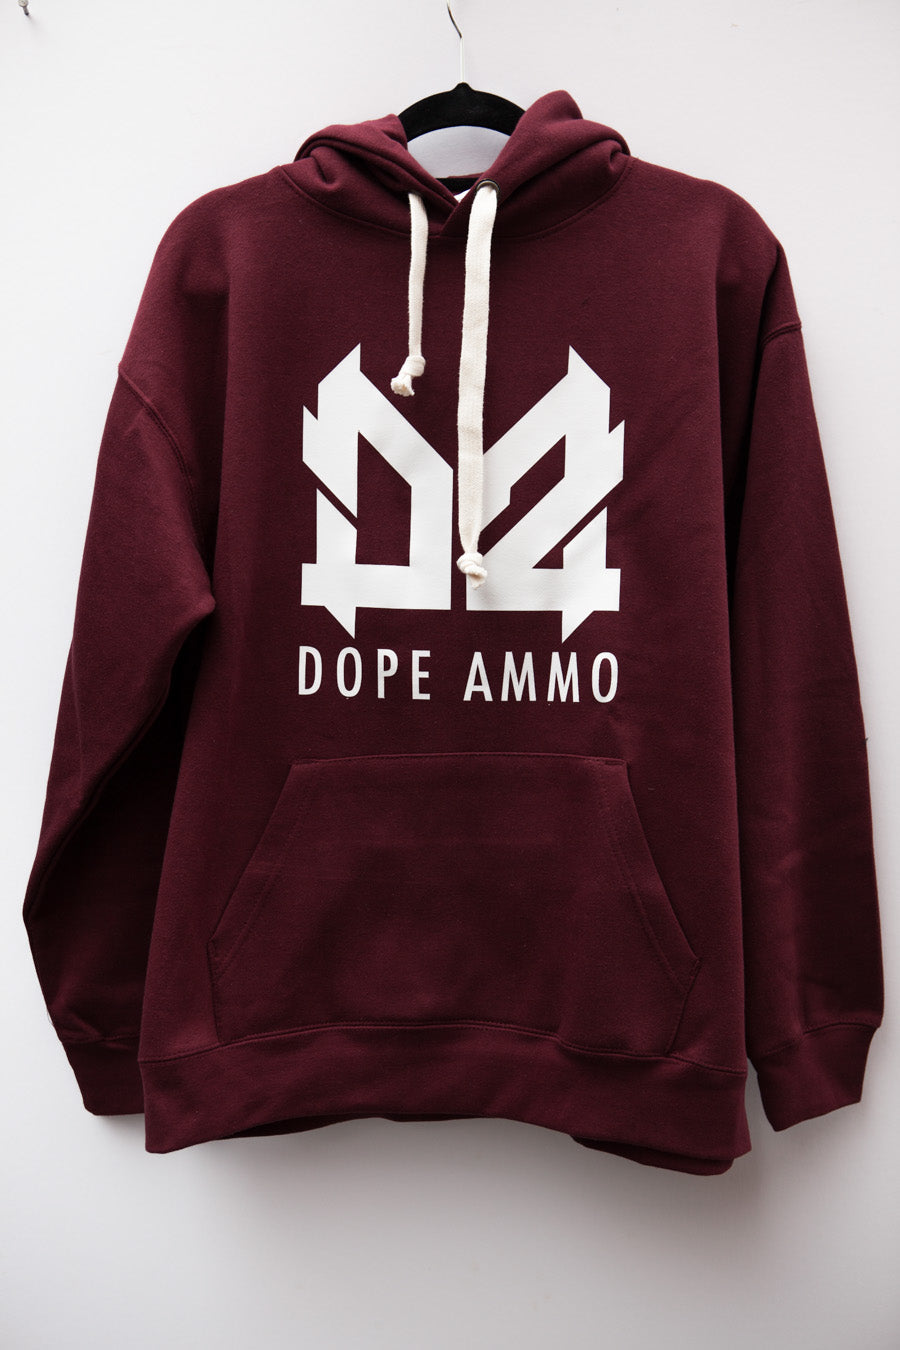 Dope Ammo Hoodie (Burgundy with white print)